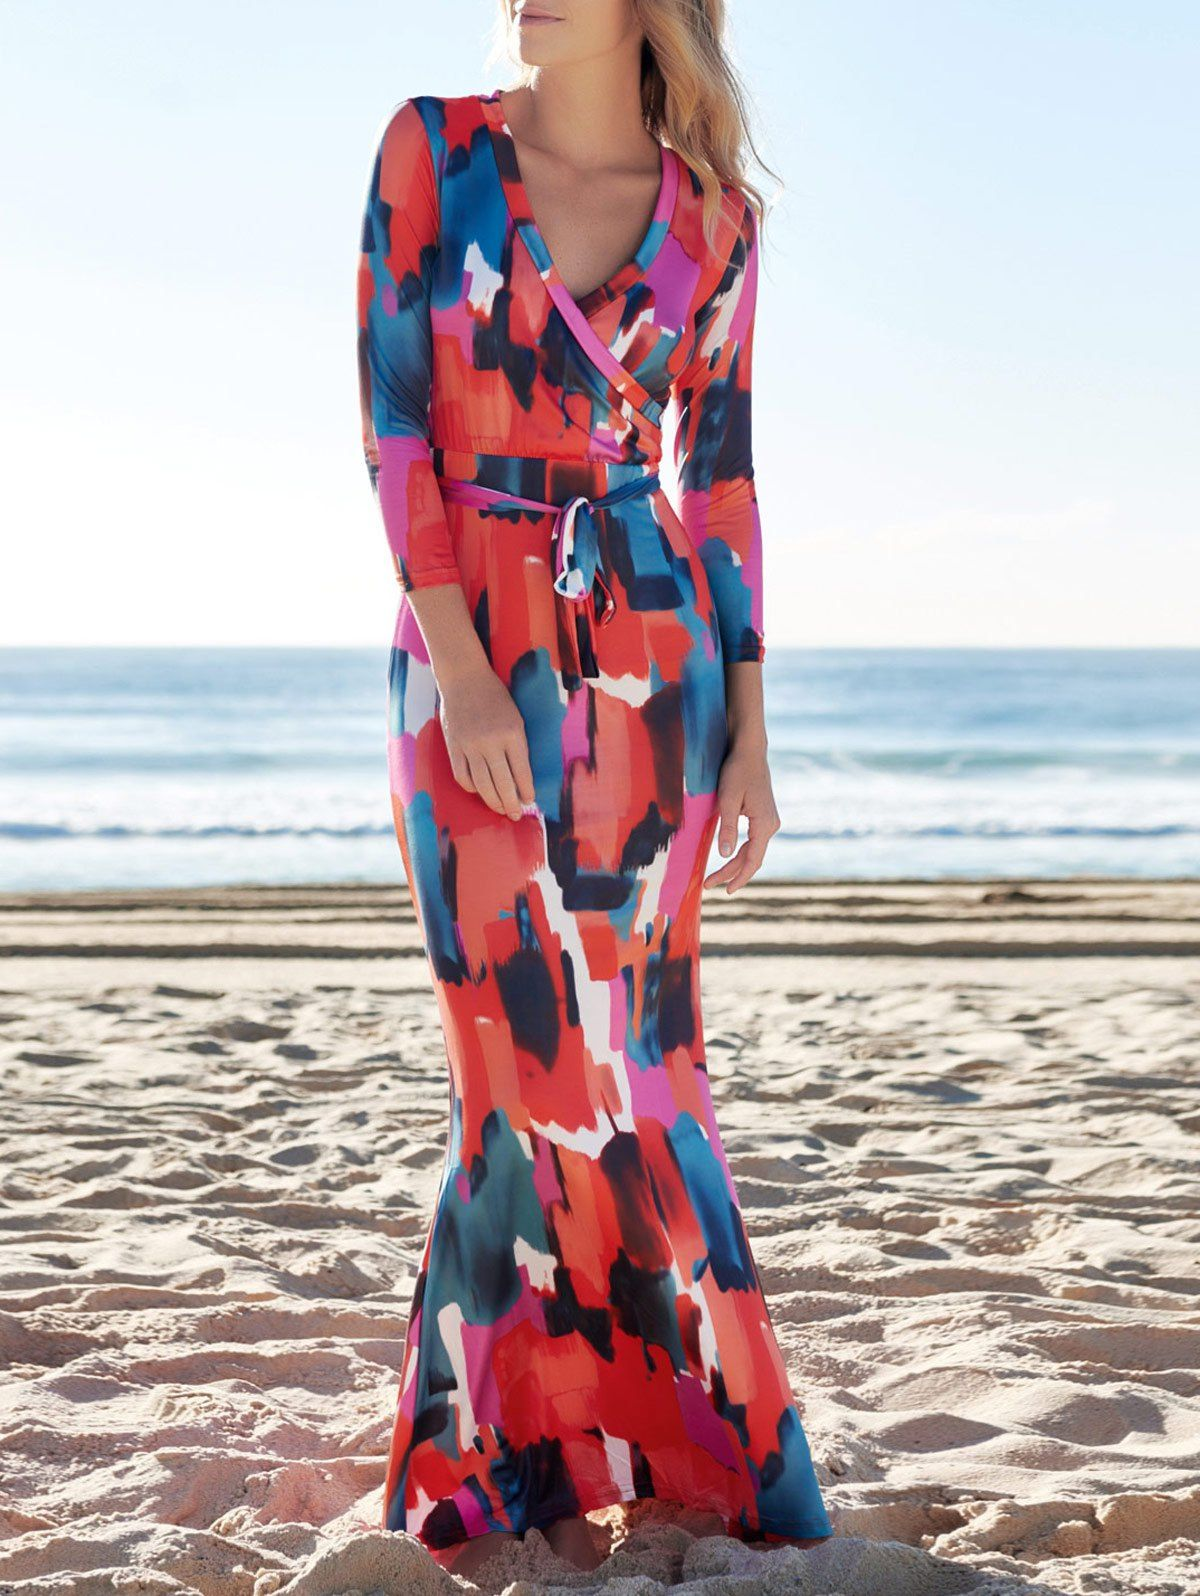 Chic plunging neck sleeve geometric pattern maxi dress for women